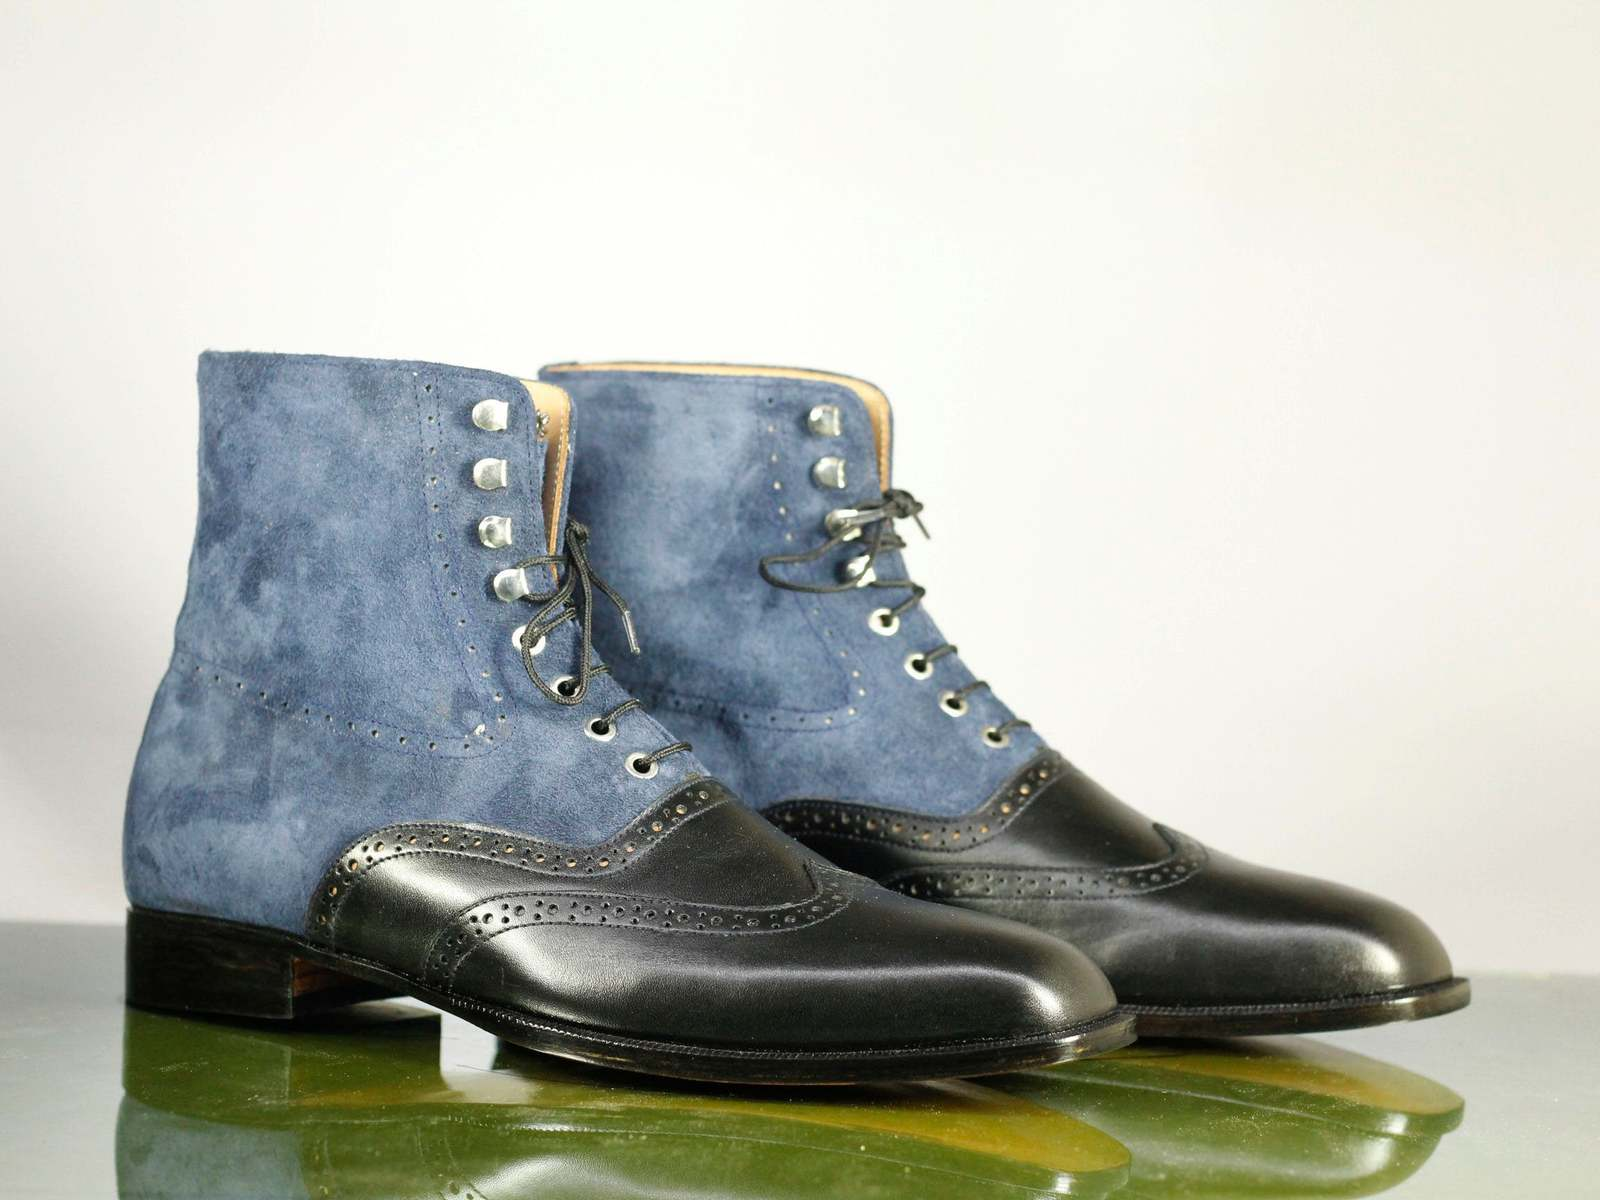 Handmade Black Leather & Blue Suede High Ankle Lace Up Wing Tip Boots For Men